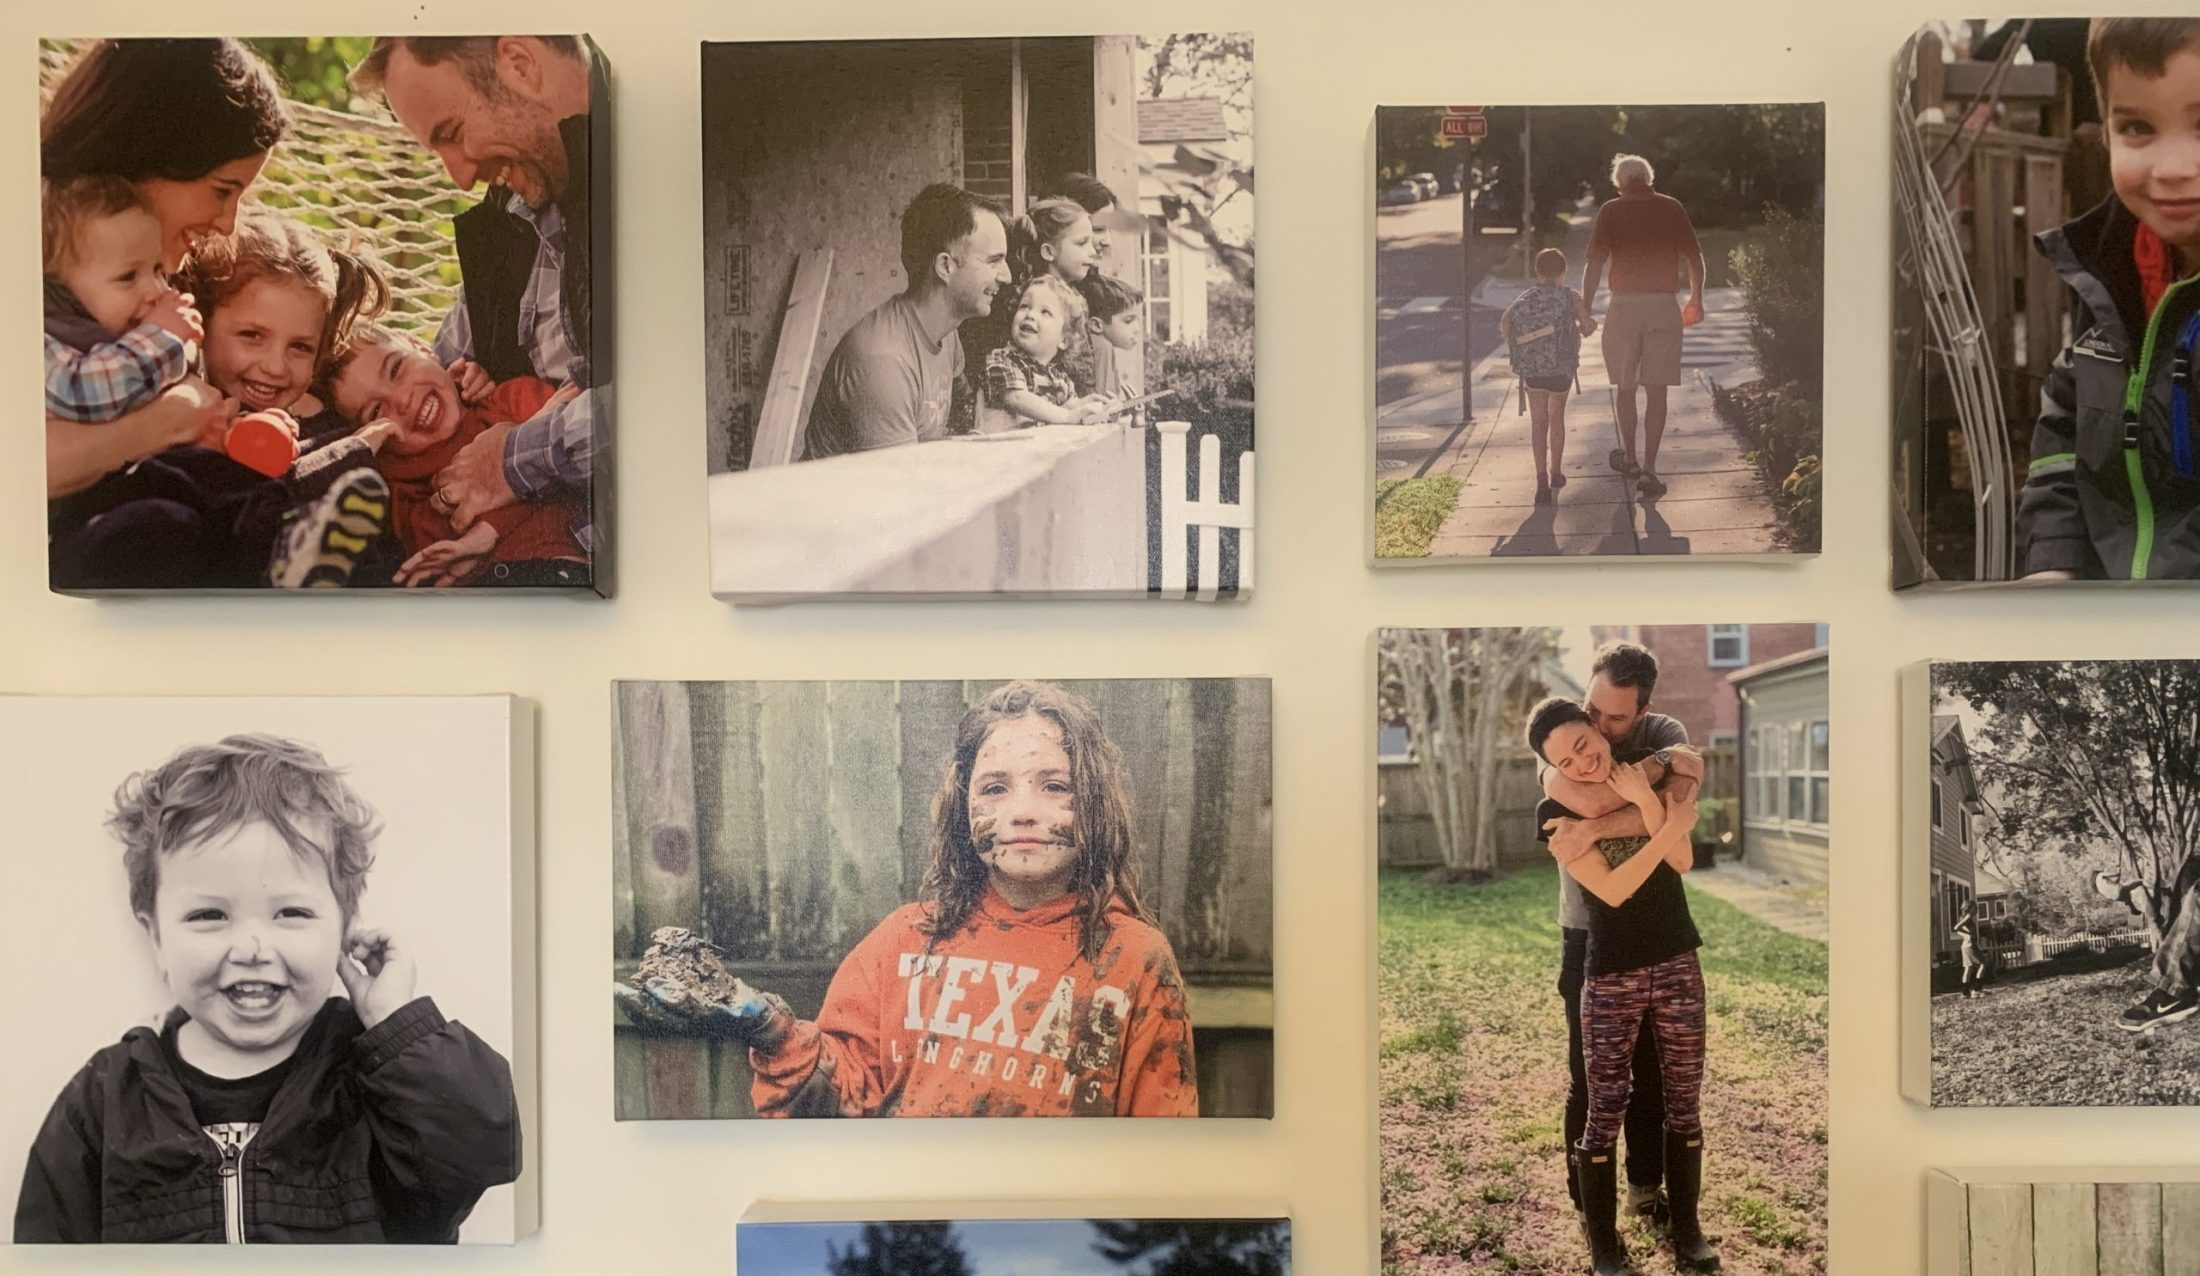 Wall of photos in home of DC widow blog writer Marjorie Brimley